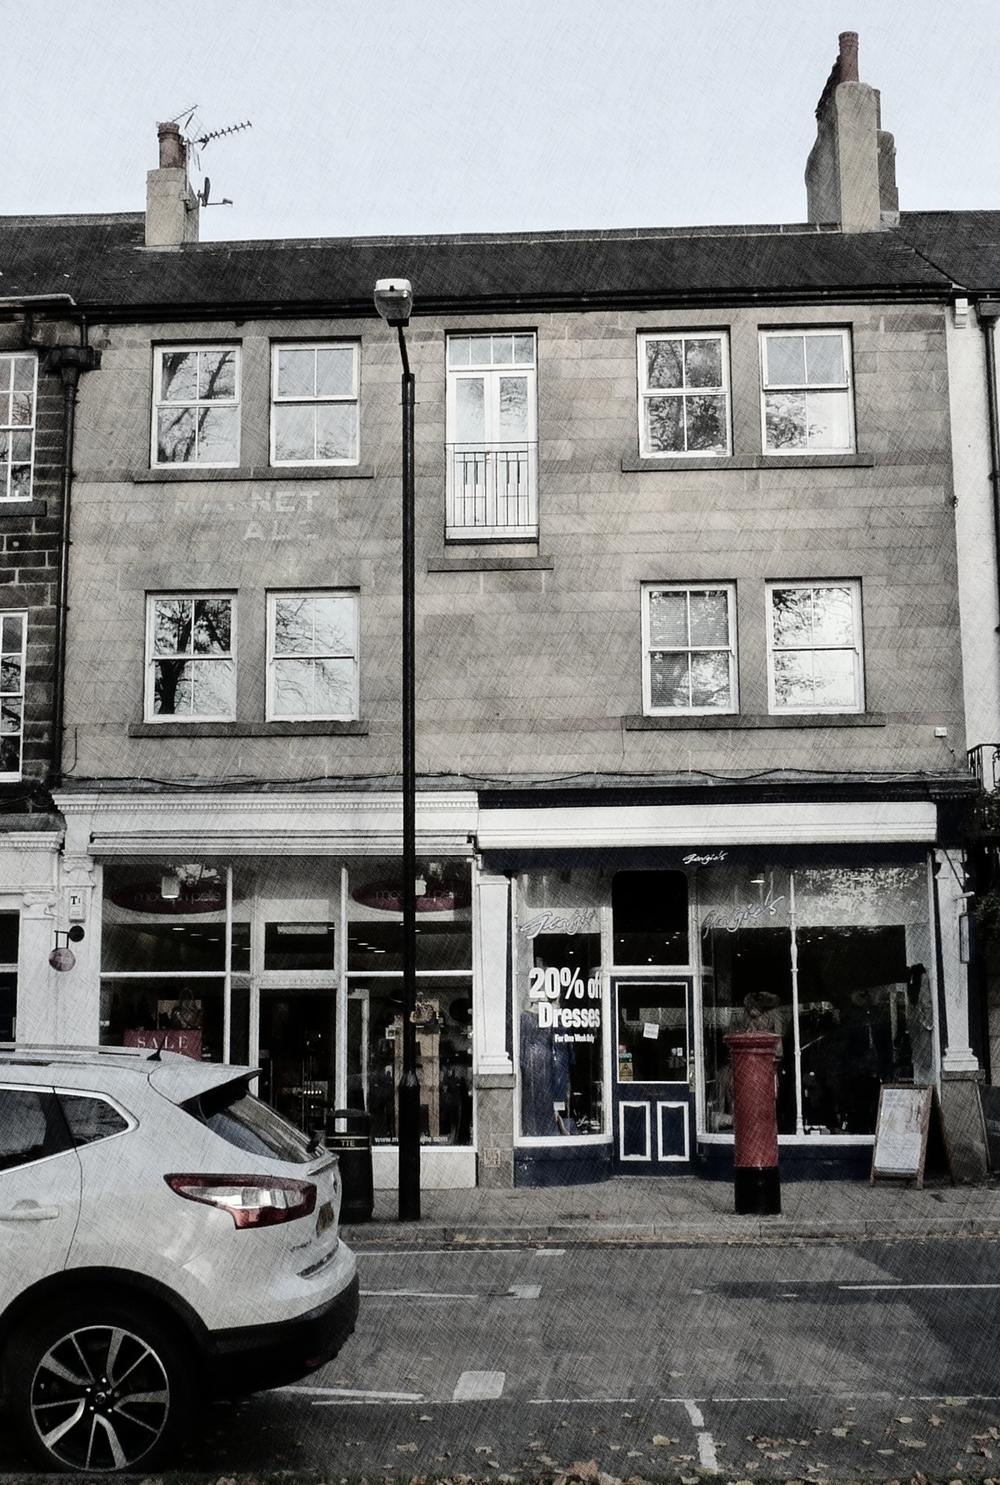 Our studios are located on West Park, Harrogate overlooking The Stray